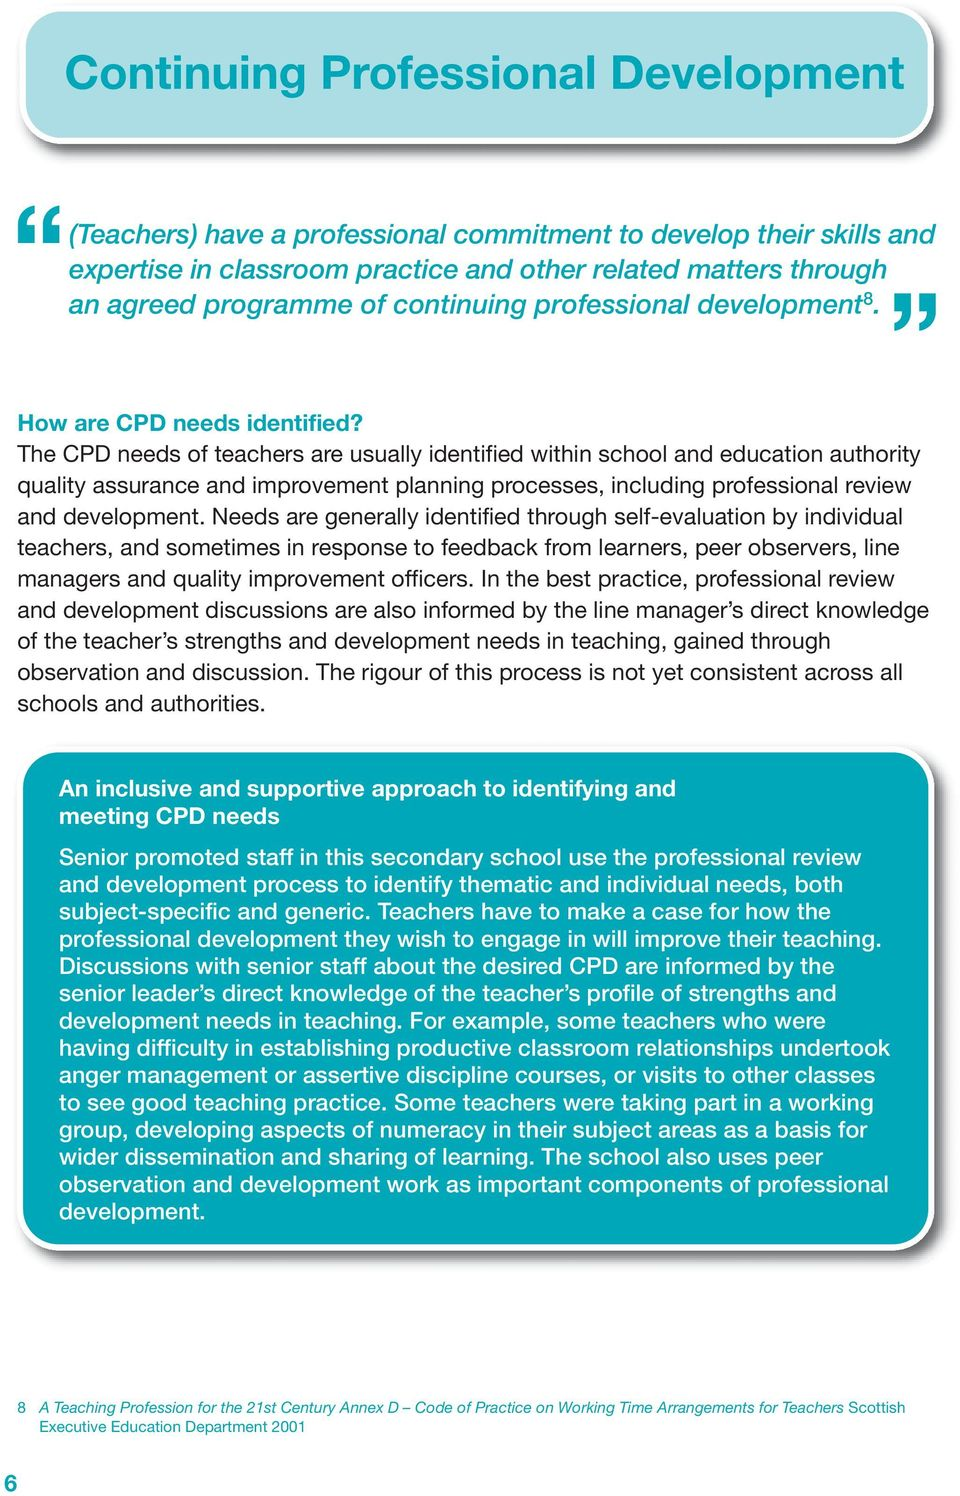 The CPD needs of teachers are usually identified within school and education authority quality assurance and improvement planning processes, including professional review and development.